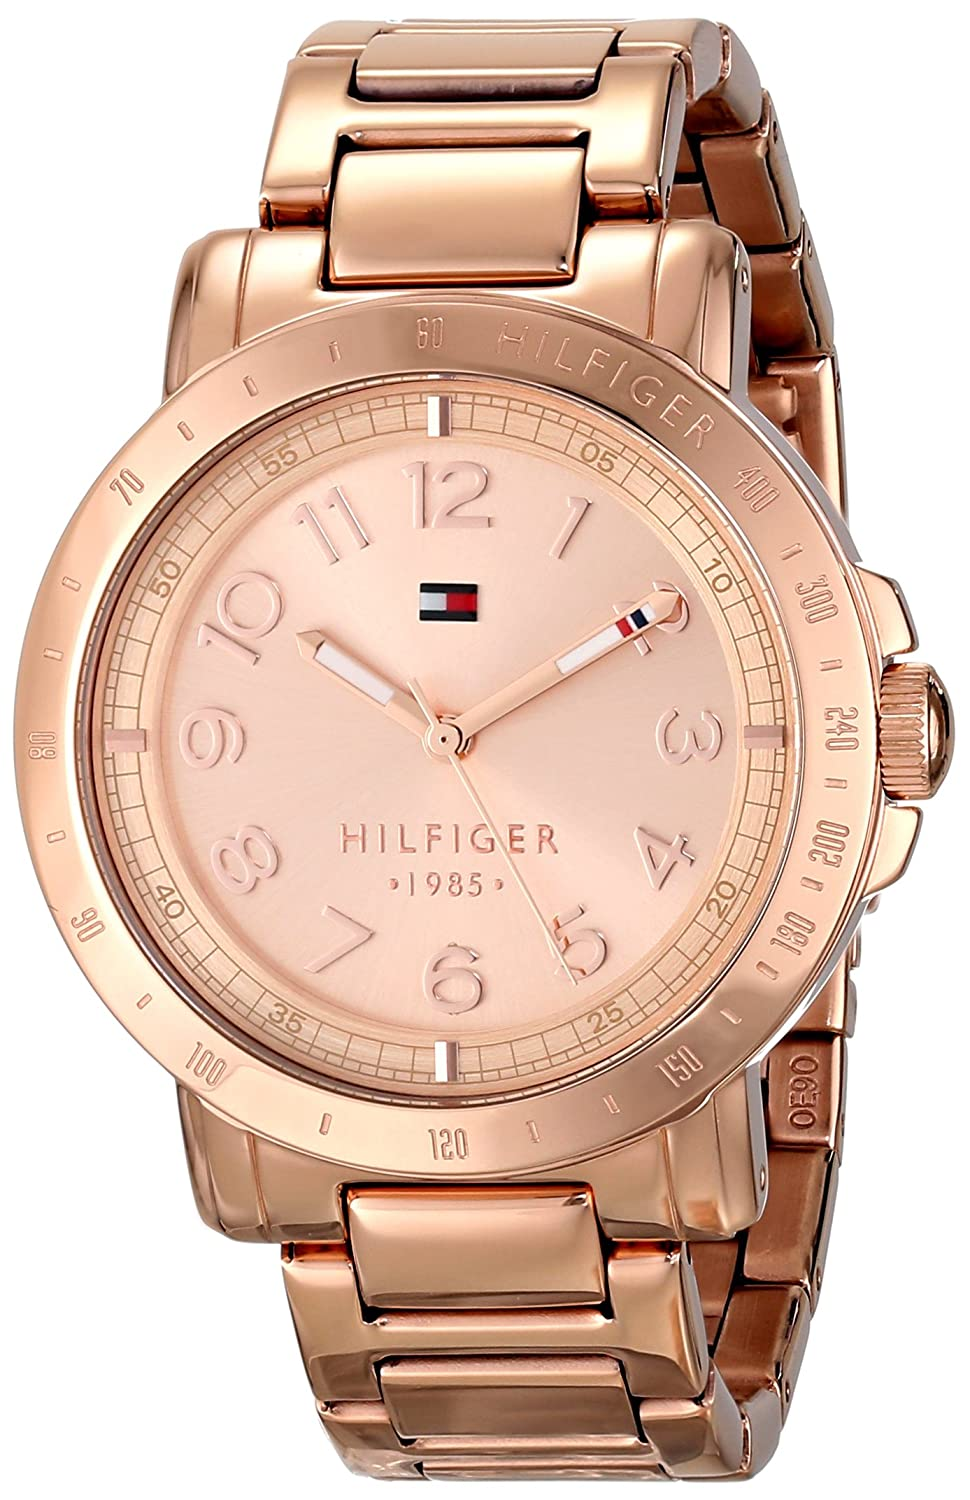 this timeless made versatile ch you swiss larsson jennings sophistication a wrist the gold watches ultimate chain and pair metal with milanese band rose in watch have by iconic original lugano detailed